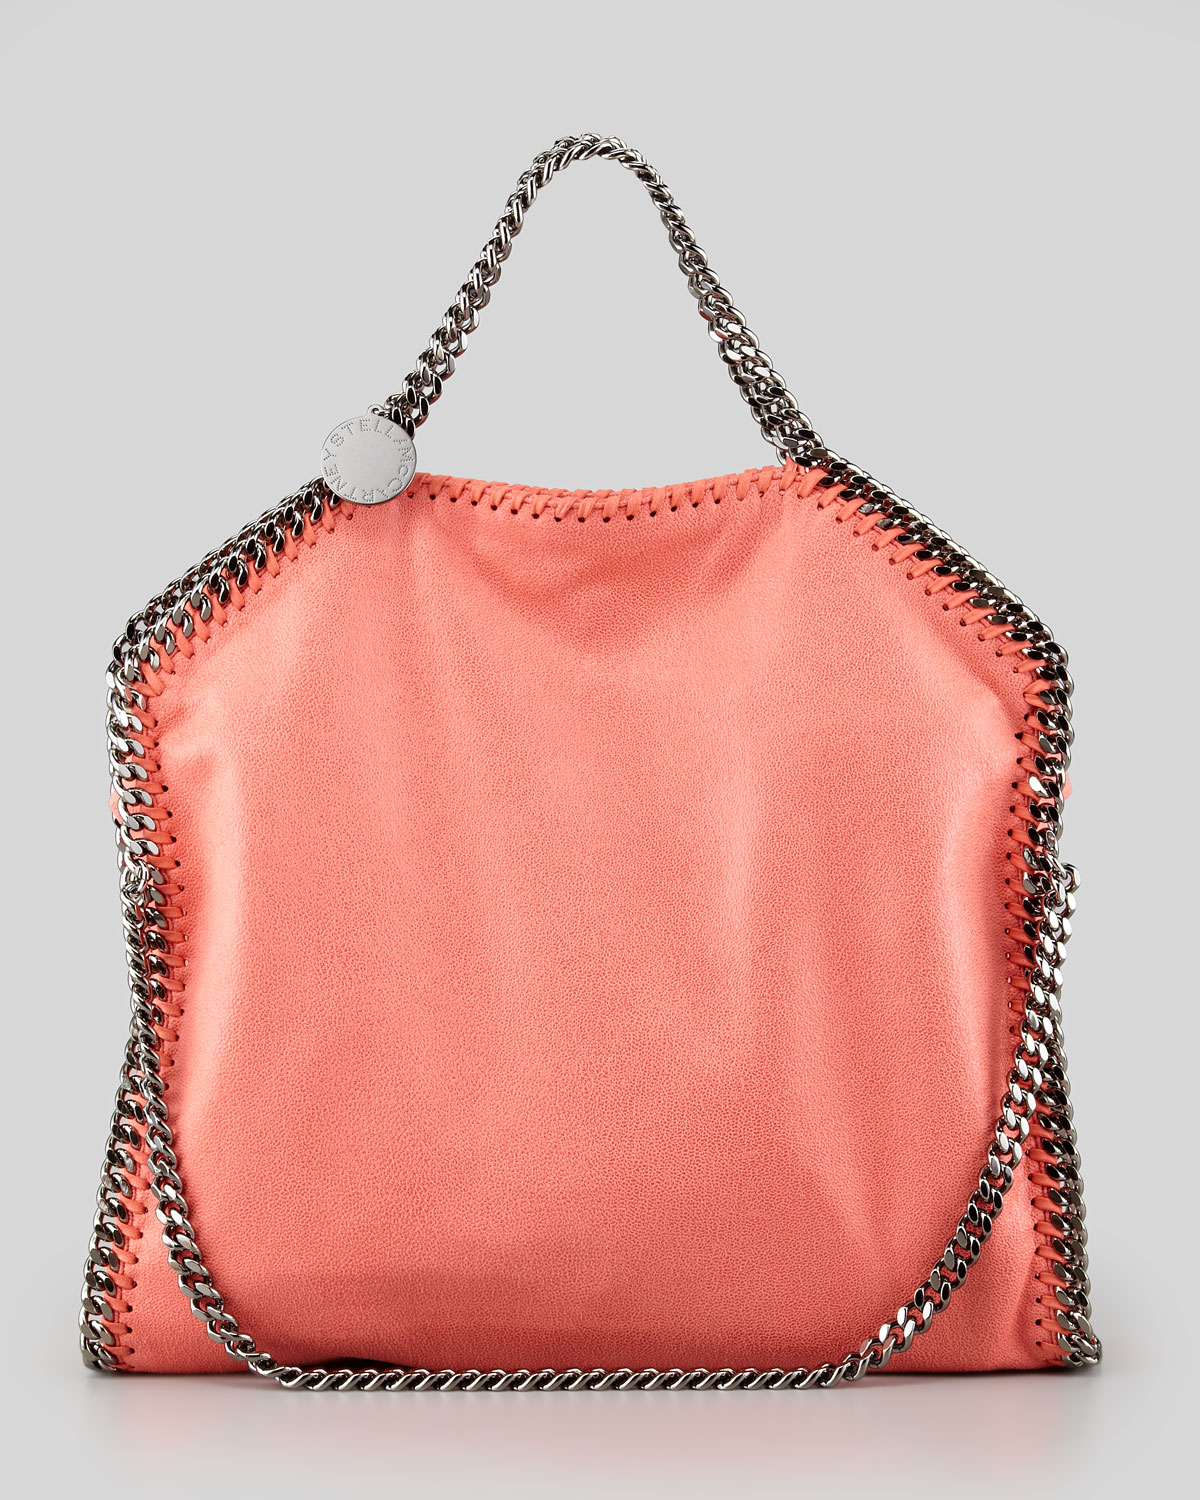 Purses With Chain Handles